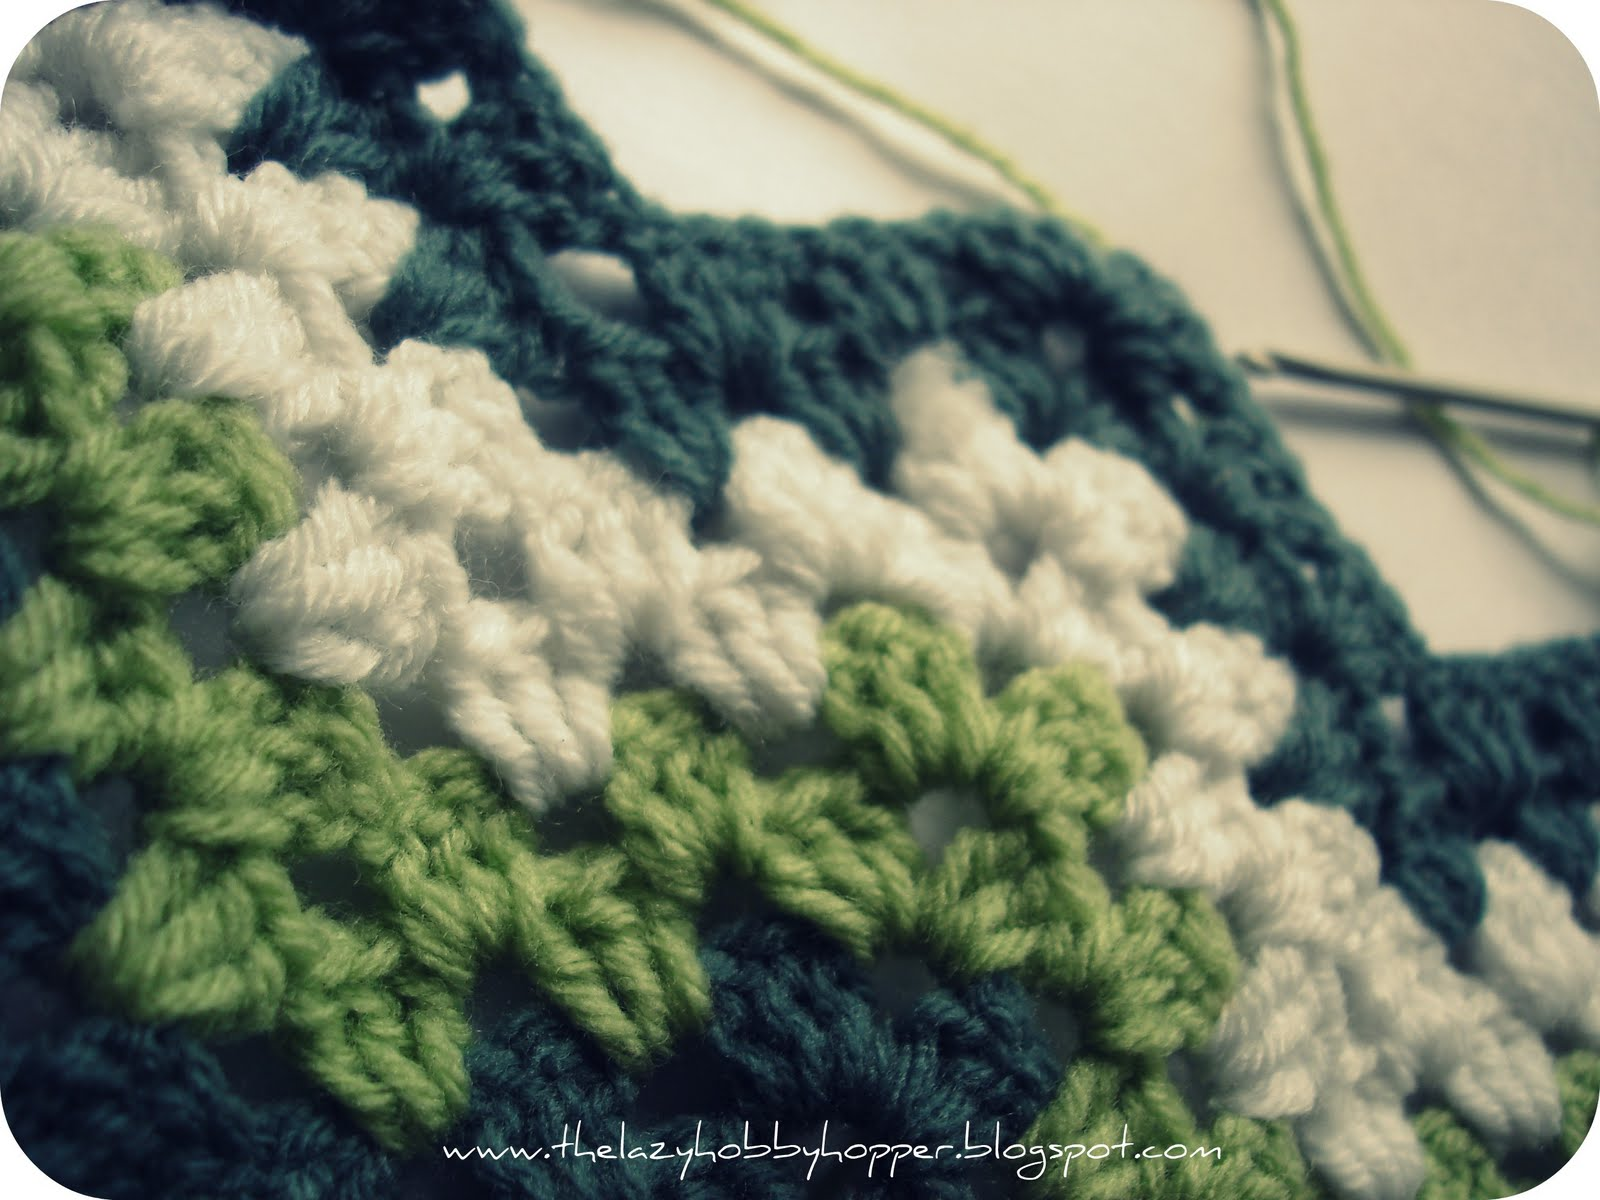 Easy Crochet Ripple Afghan Tutorial : The Lazy Hobbyhopper: How to crochet granny ripple